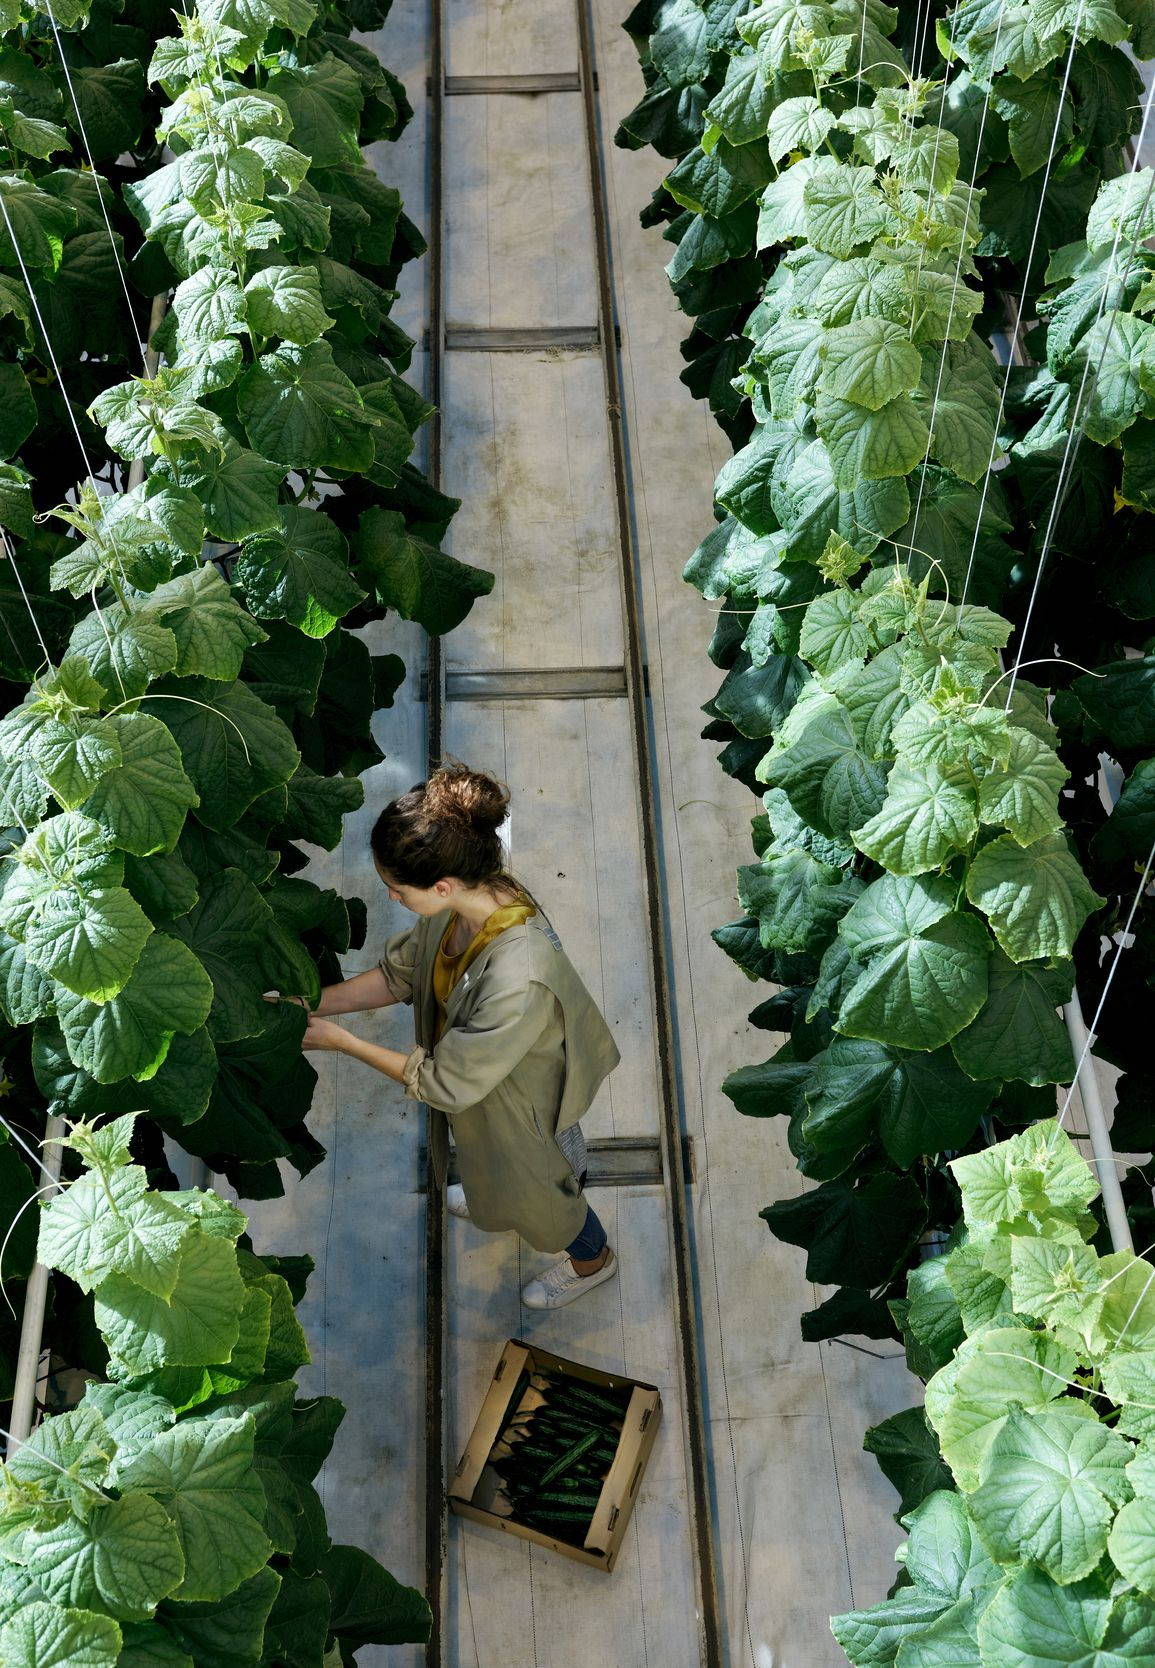 An overhead image of a woman checking fresh produce in a greenhouse